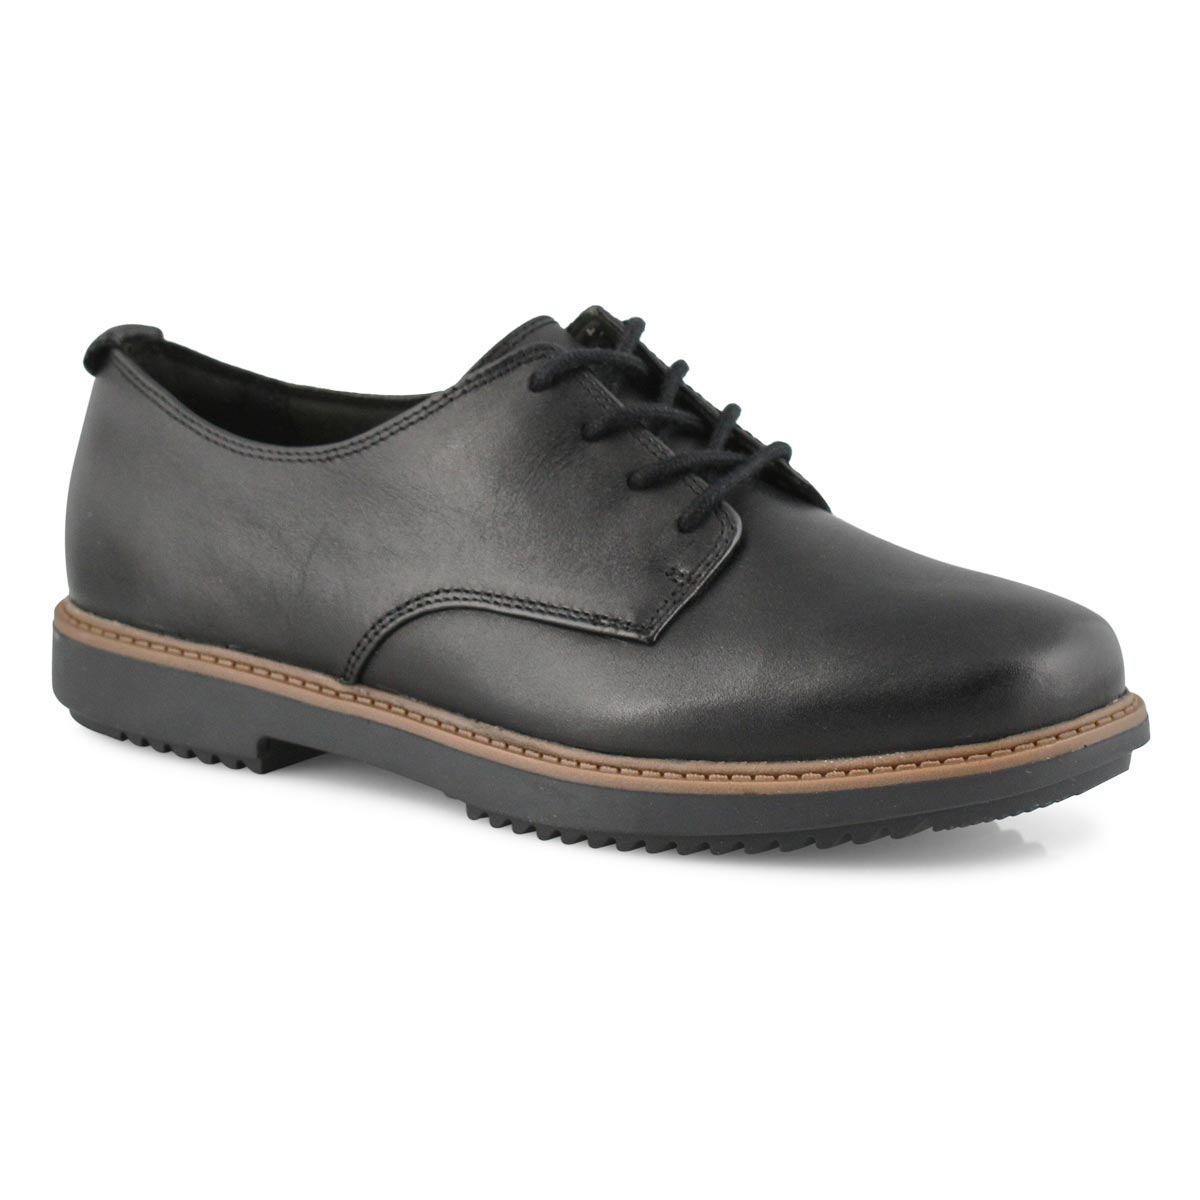 Lds Raisie Bloom blk casual oxford